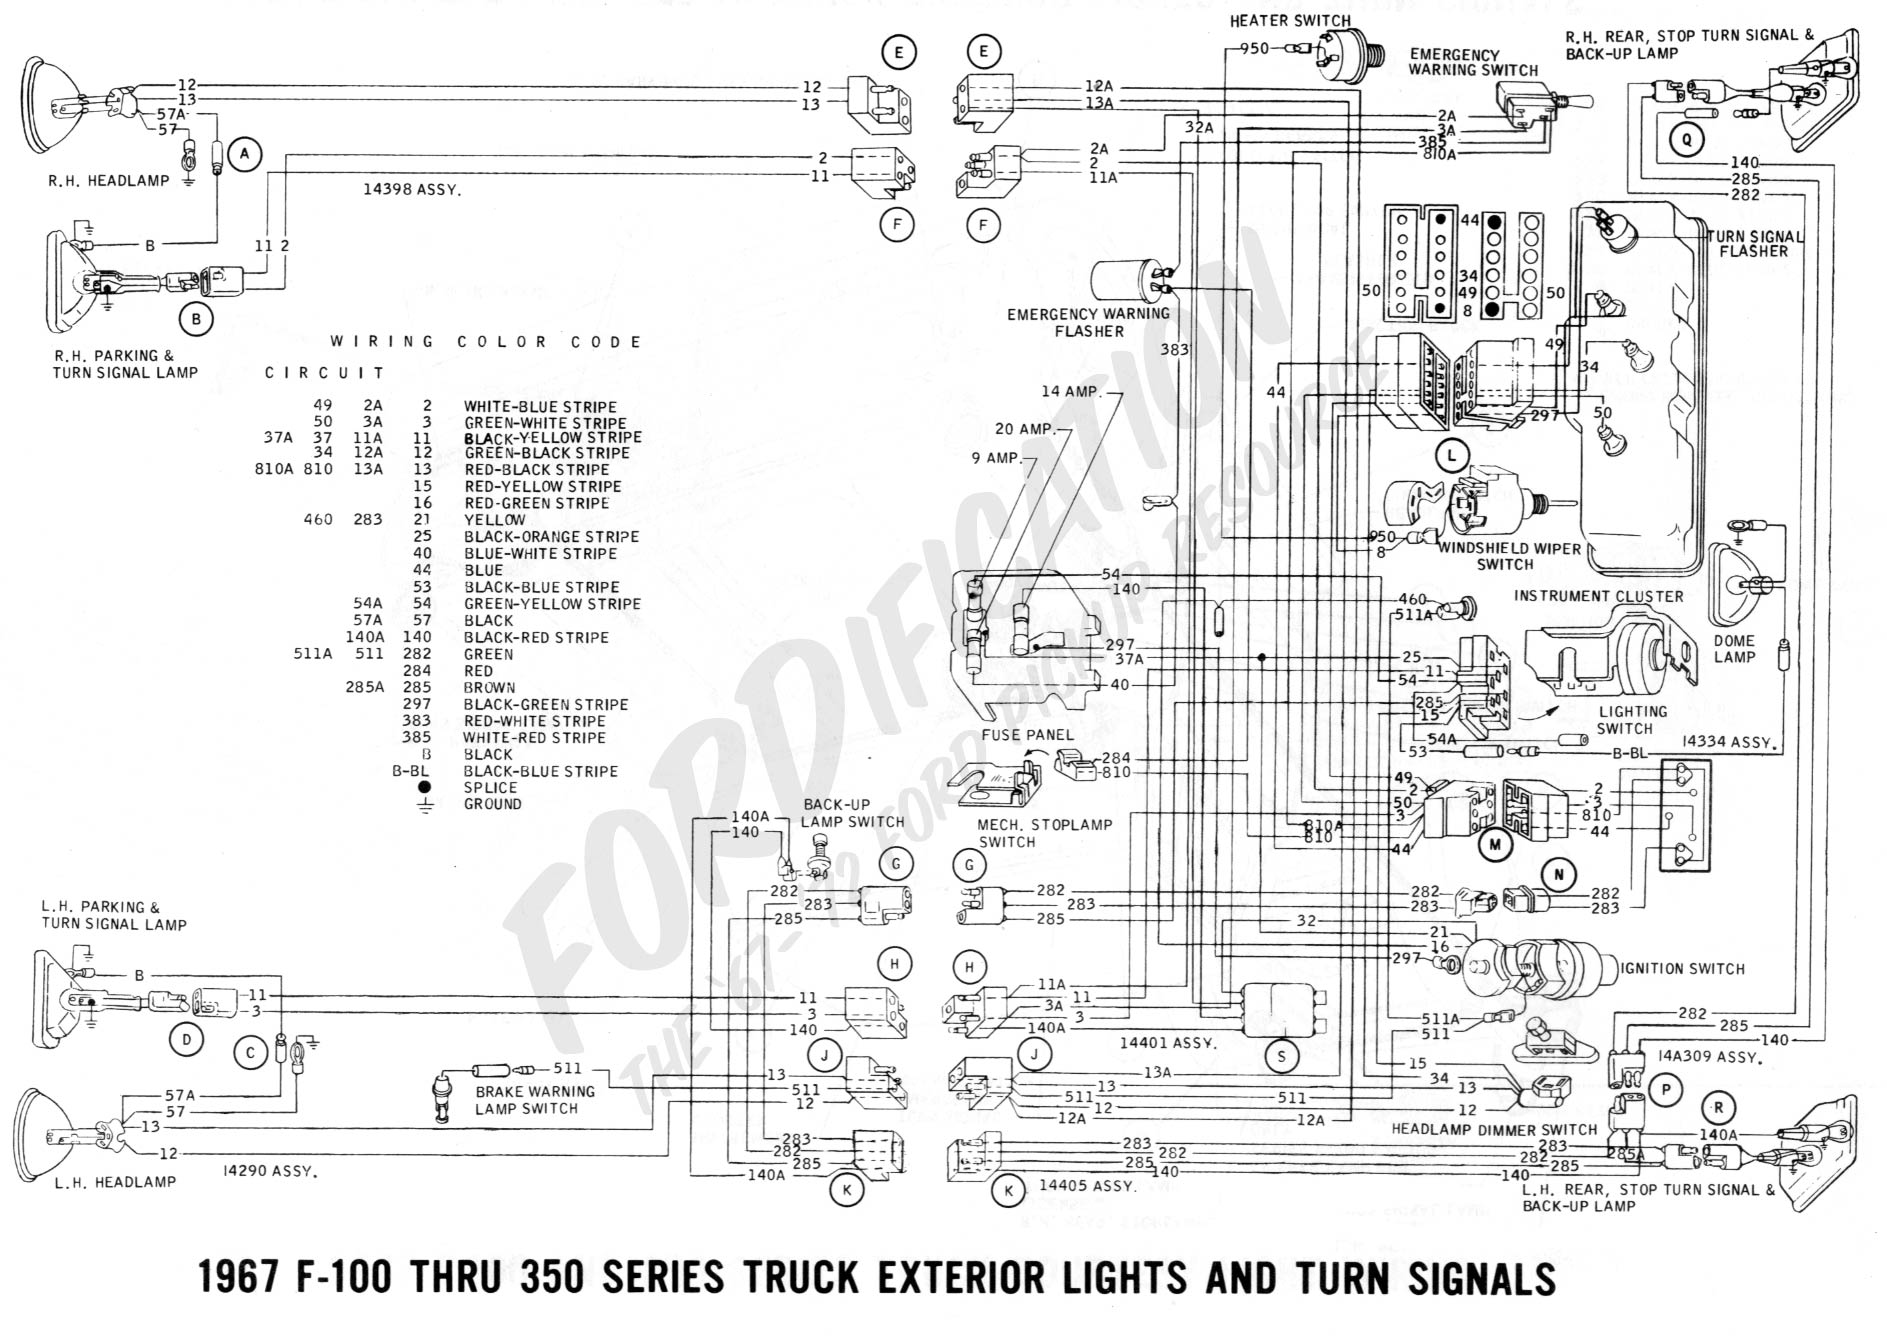 1967 f100 wiring diagram ot davidforlife de \u2022 1969 Jeep CJ5 Wiring-Diagram 1967 f 100 wiring diagrams great installation of wiring diagram u2022 rh toyskids co 1967 ford f100 ignition switch wiring diagram